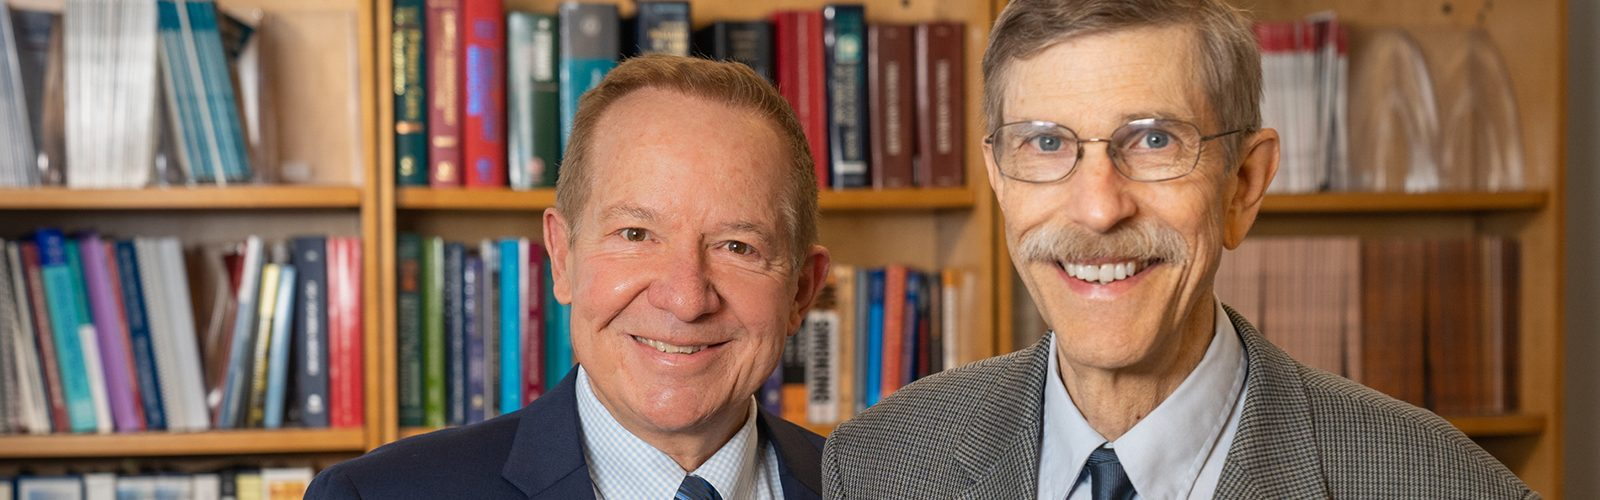 Dr. Michael Fiore and Dr. Tim Baker